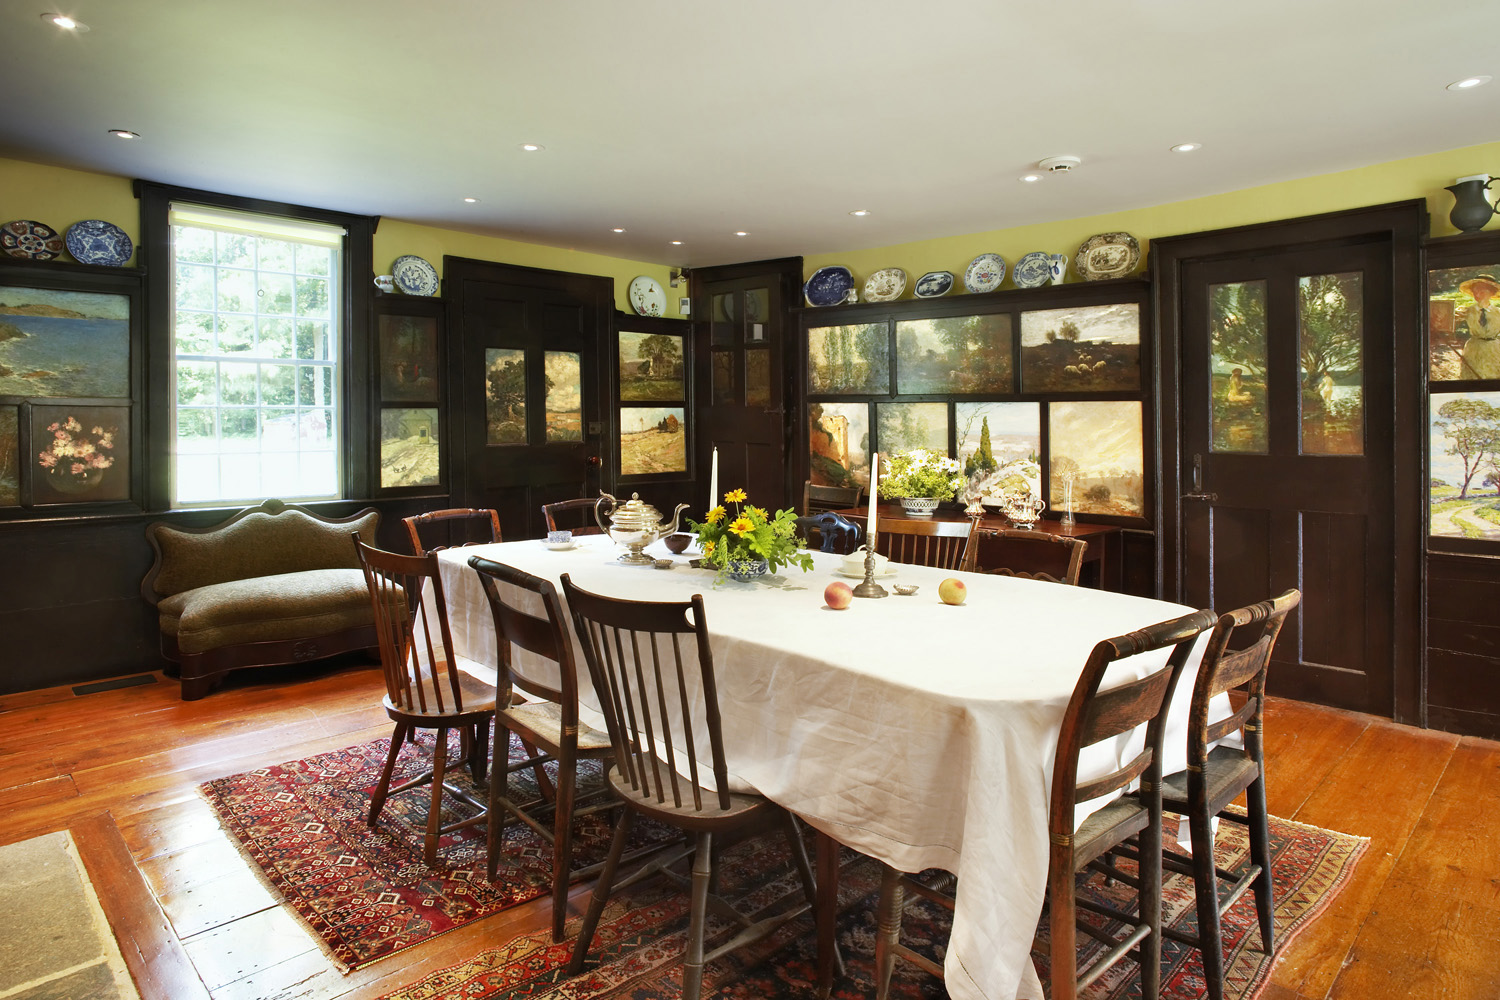 Dining Room of the Florence Griswold house. Credit: Joe Standart.